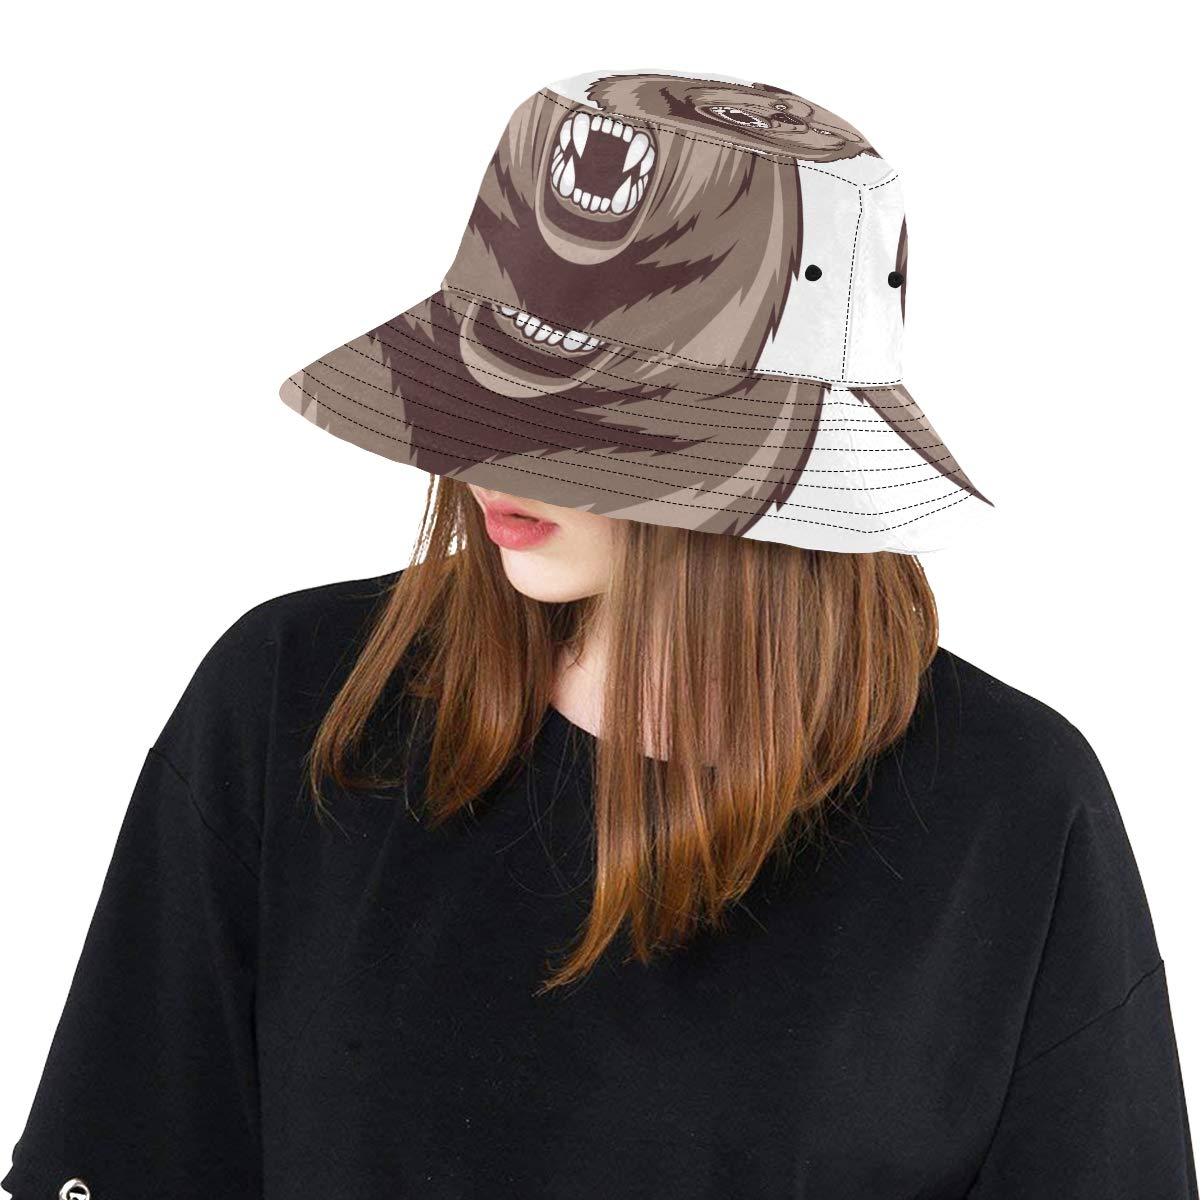 Cool Aggressive Angry Bear New Summer Unisex Cotton Fashion Fishing Sun Bucket Hats for Kid Women and Men with Customize Top Packable Fisherman Cap for Outdoor Travel Teens